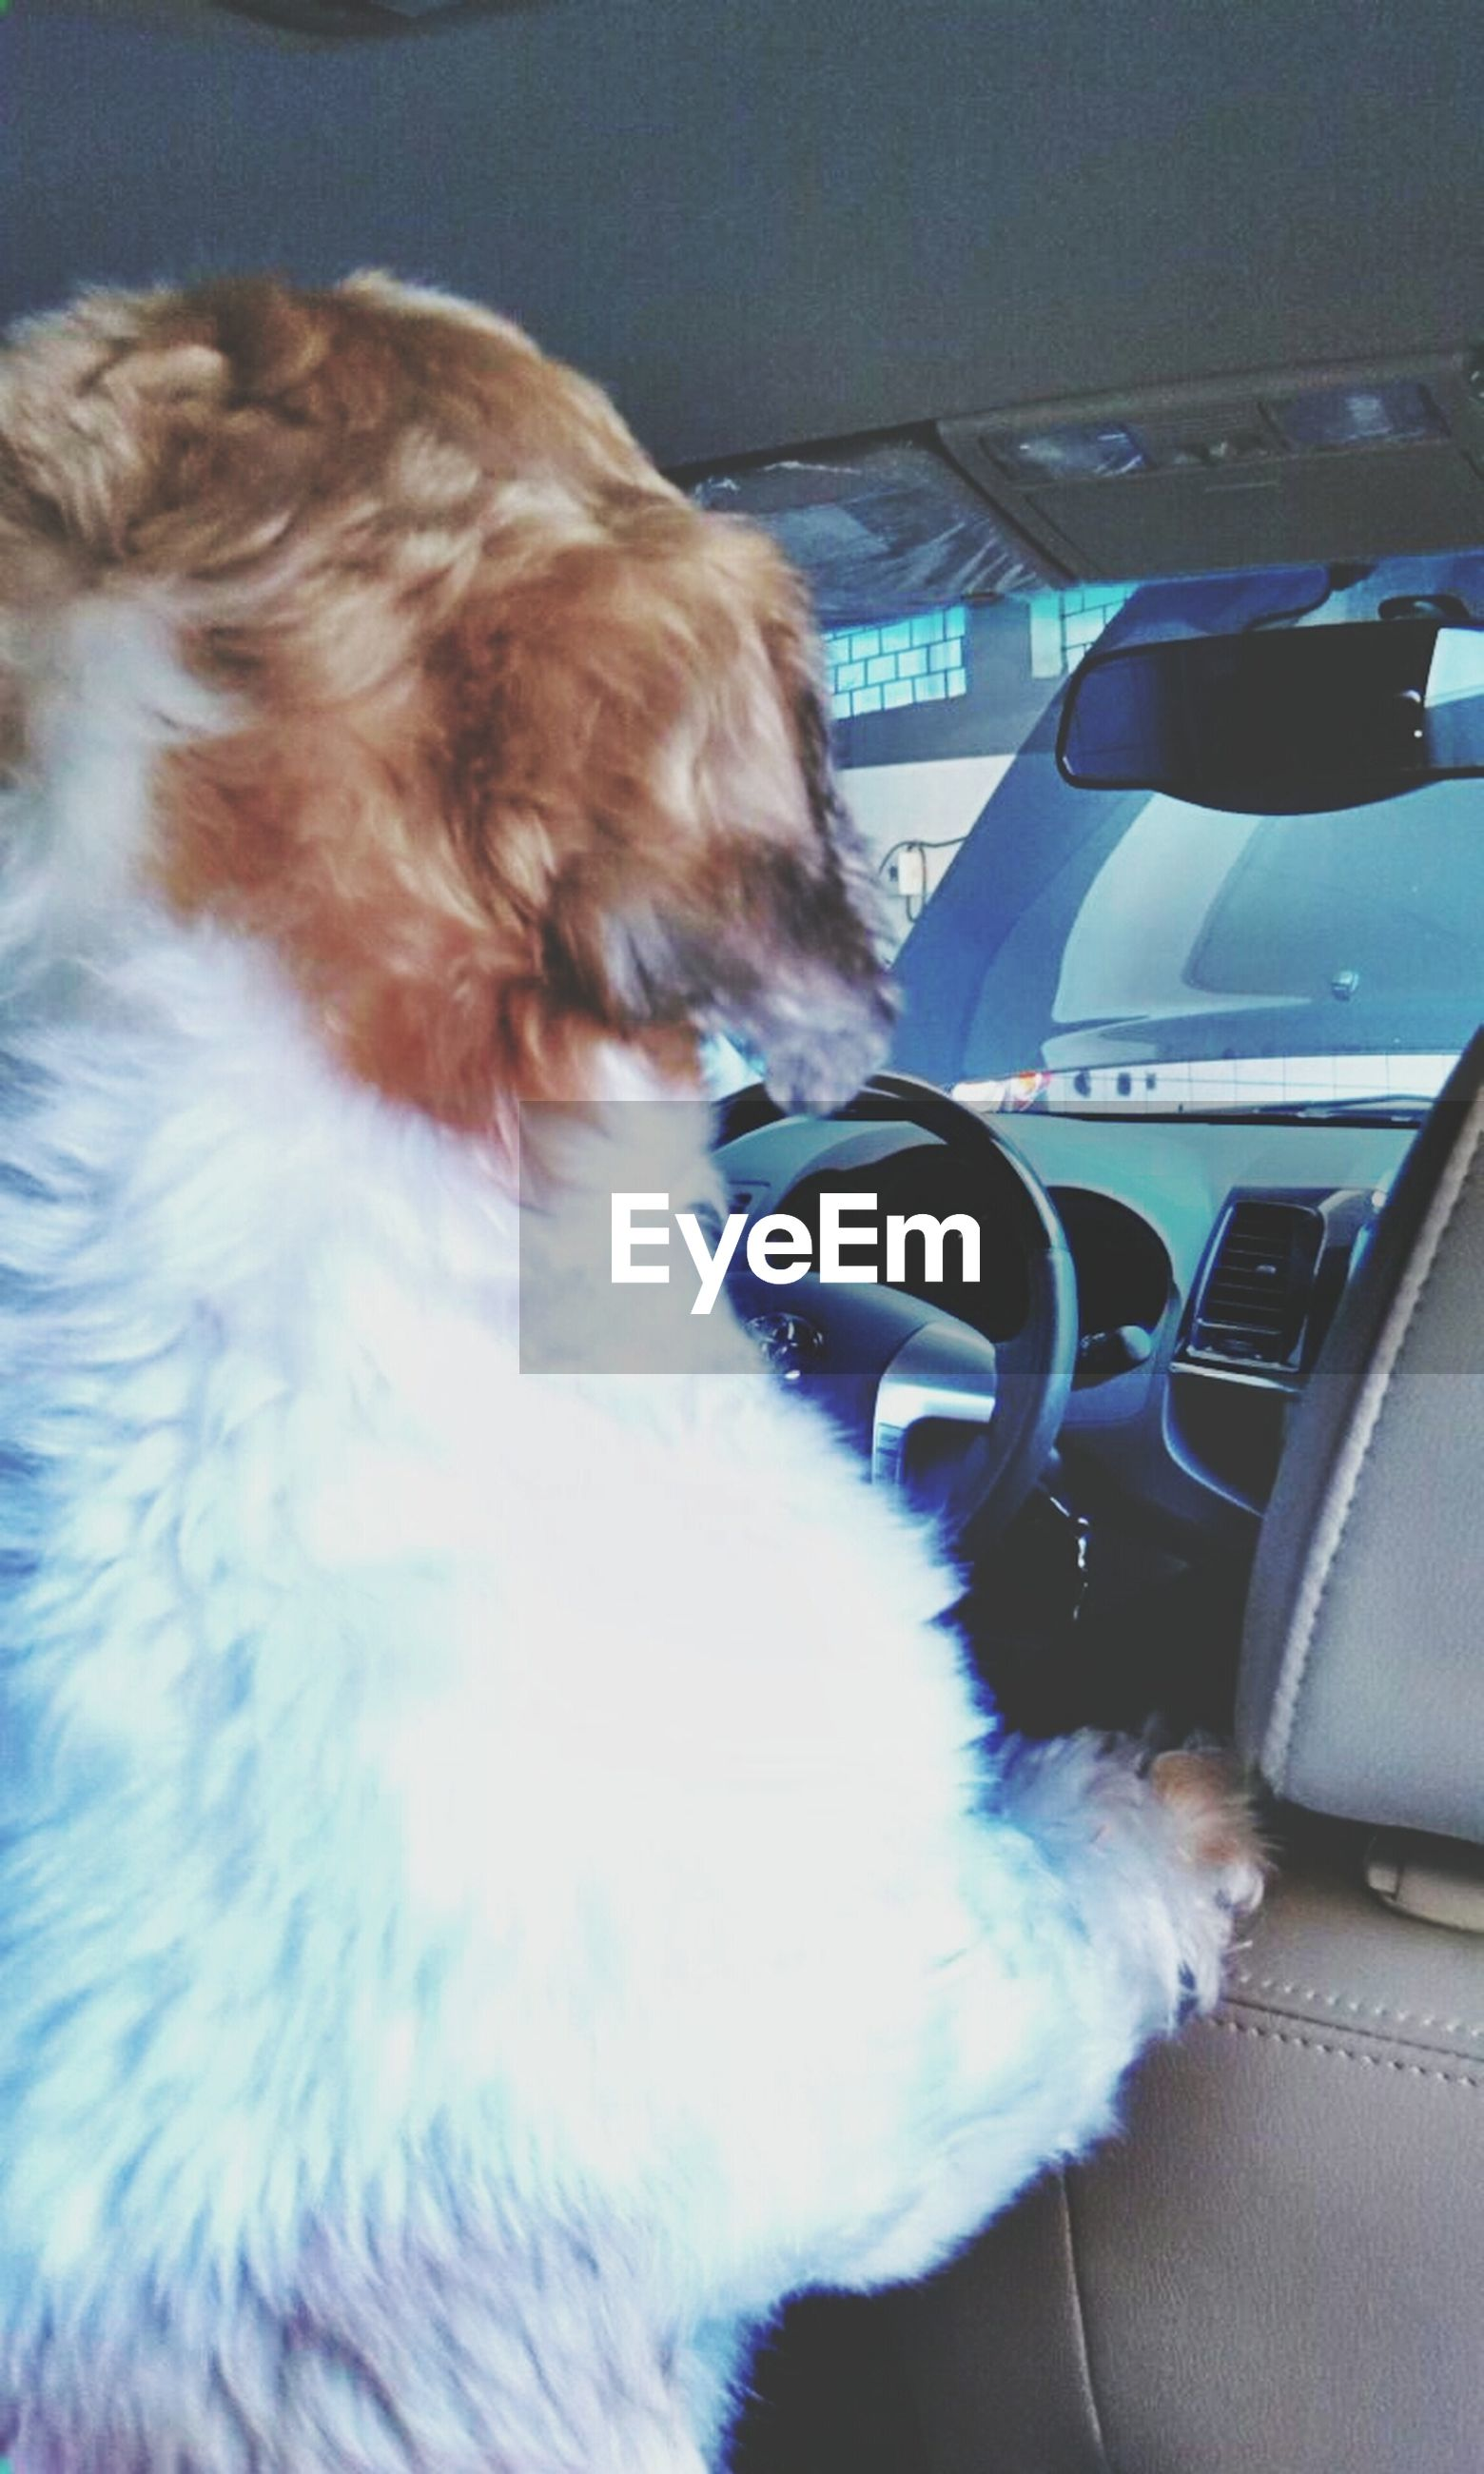 indoors, pets, domestic animals, one animal, transportation, animal themes, mammal, mode of transport, car, land vehicle, vehicle interior, dog, car interior, relaxation, domestic cat, part of, sitting, close-up, cat, resting